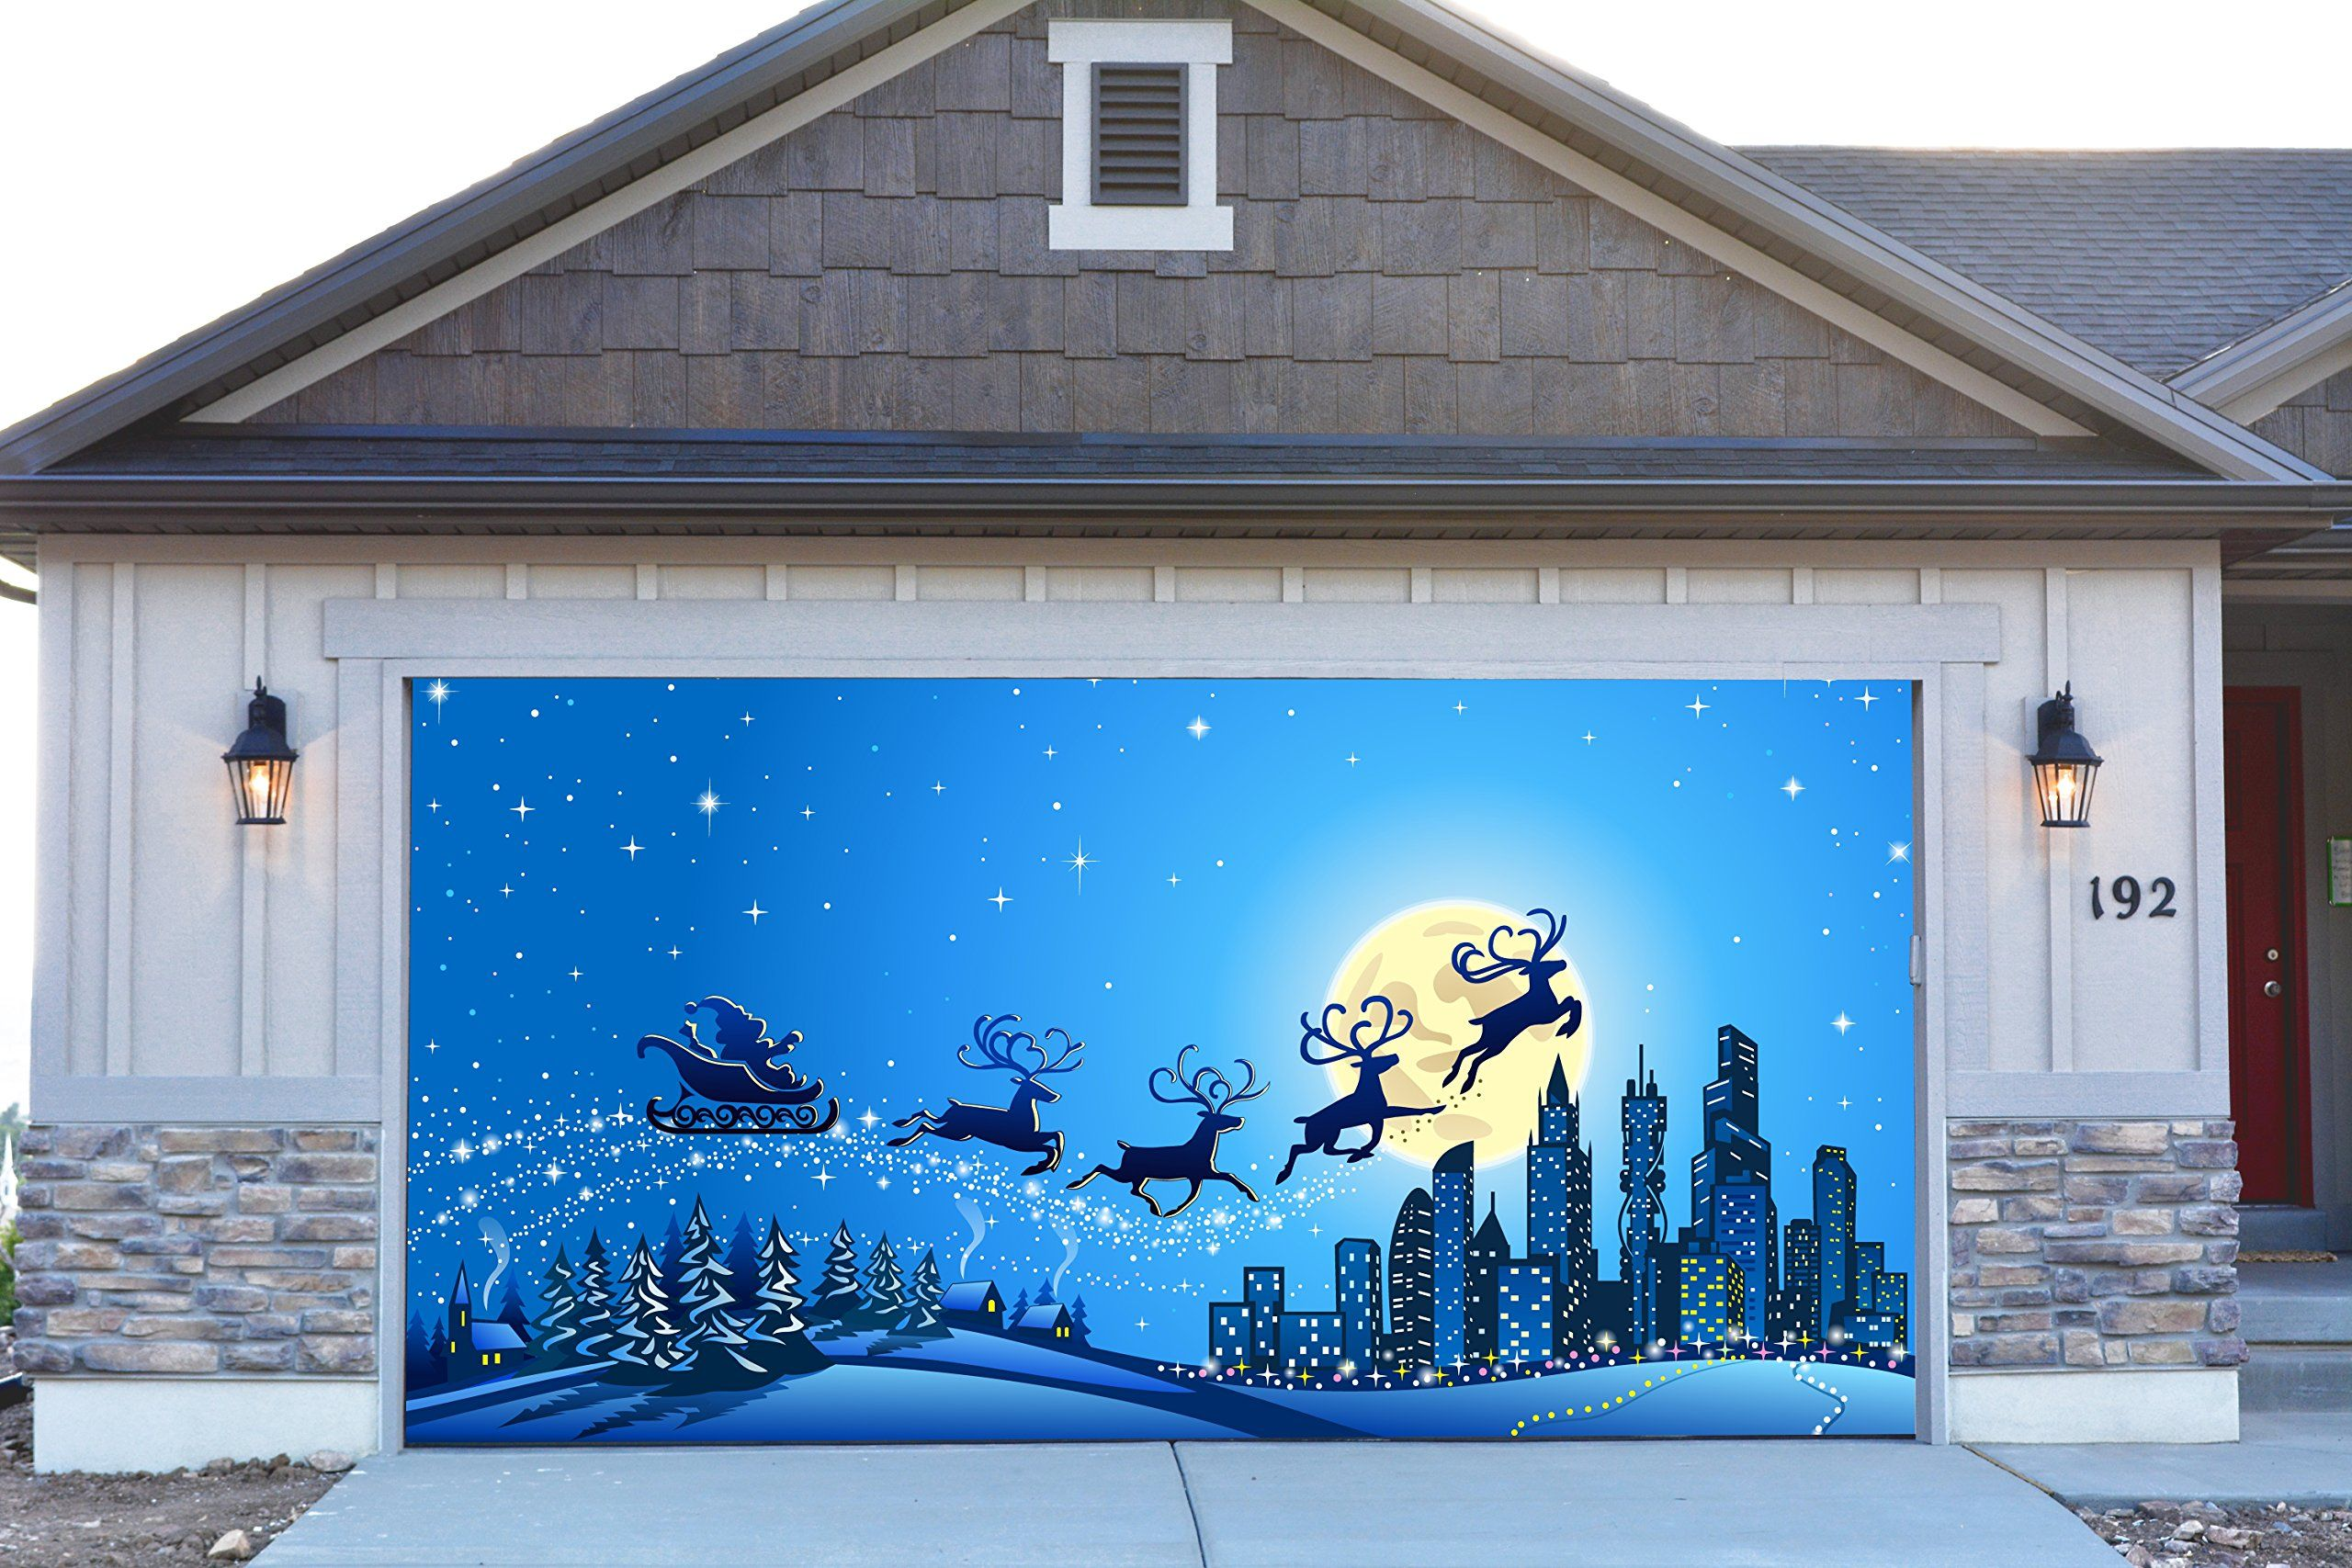 Garage door christmas decorations - 3d Garage Door Covers Christmas Decorations Outdoor Wall Banners Outside Home Decor Santa Claus Stickers Gd24